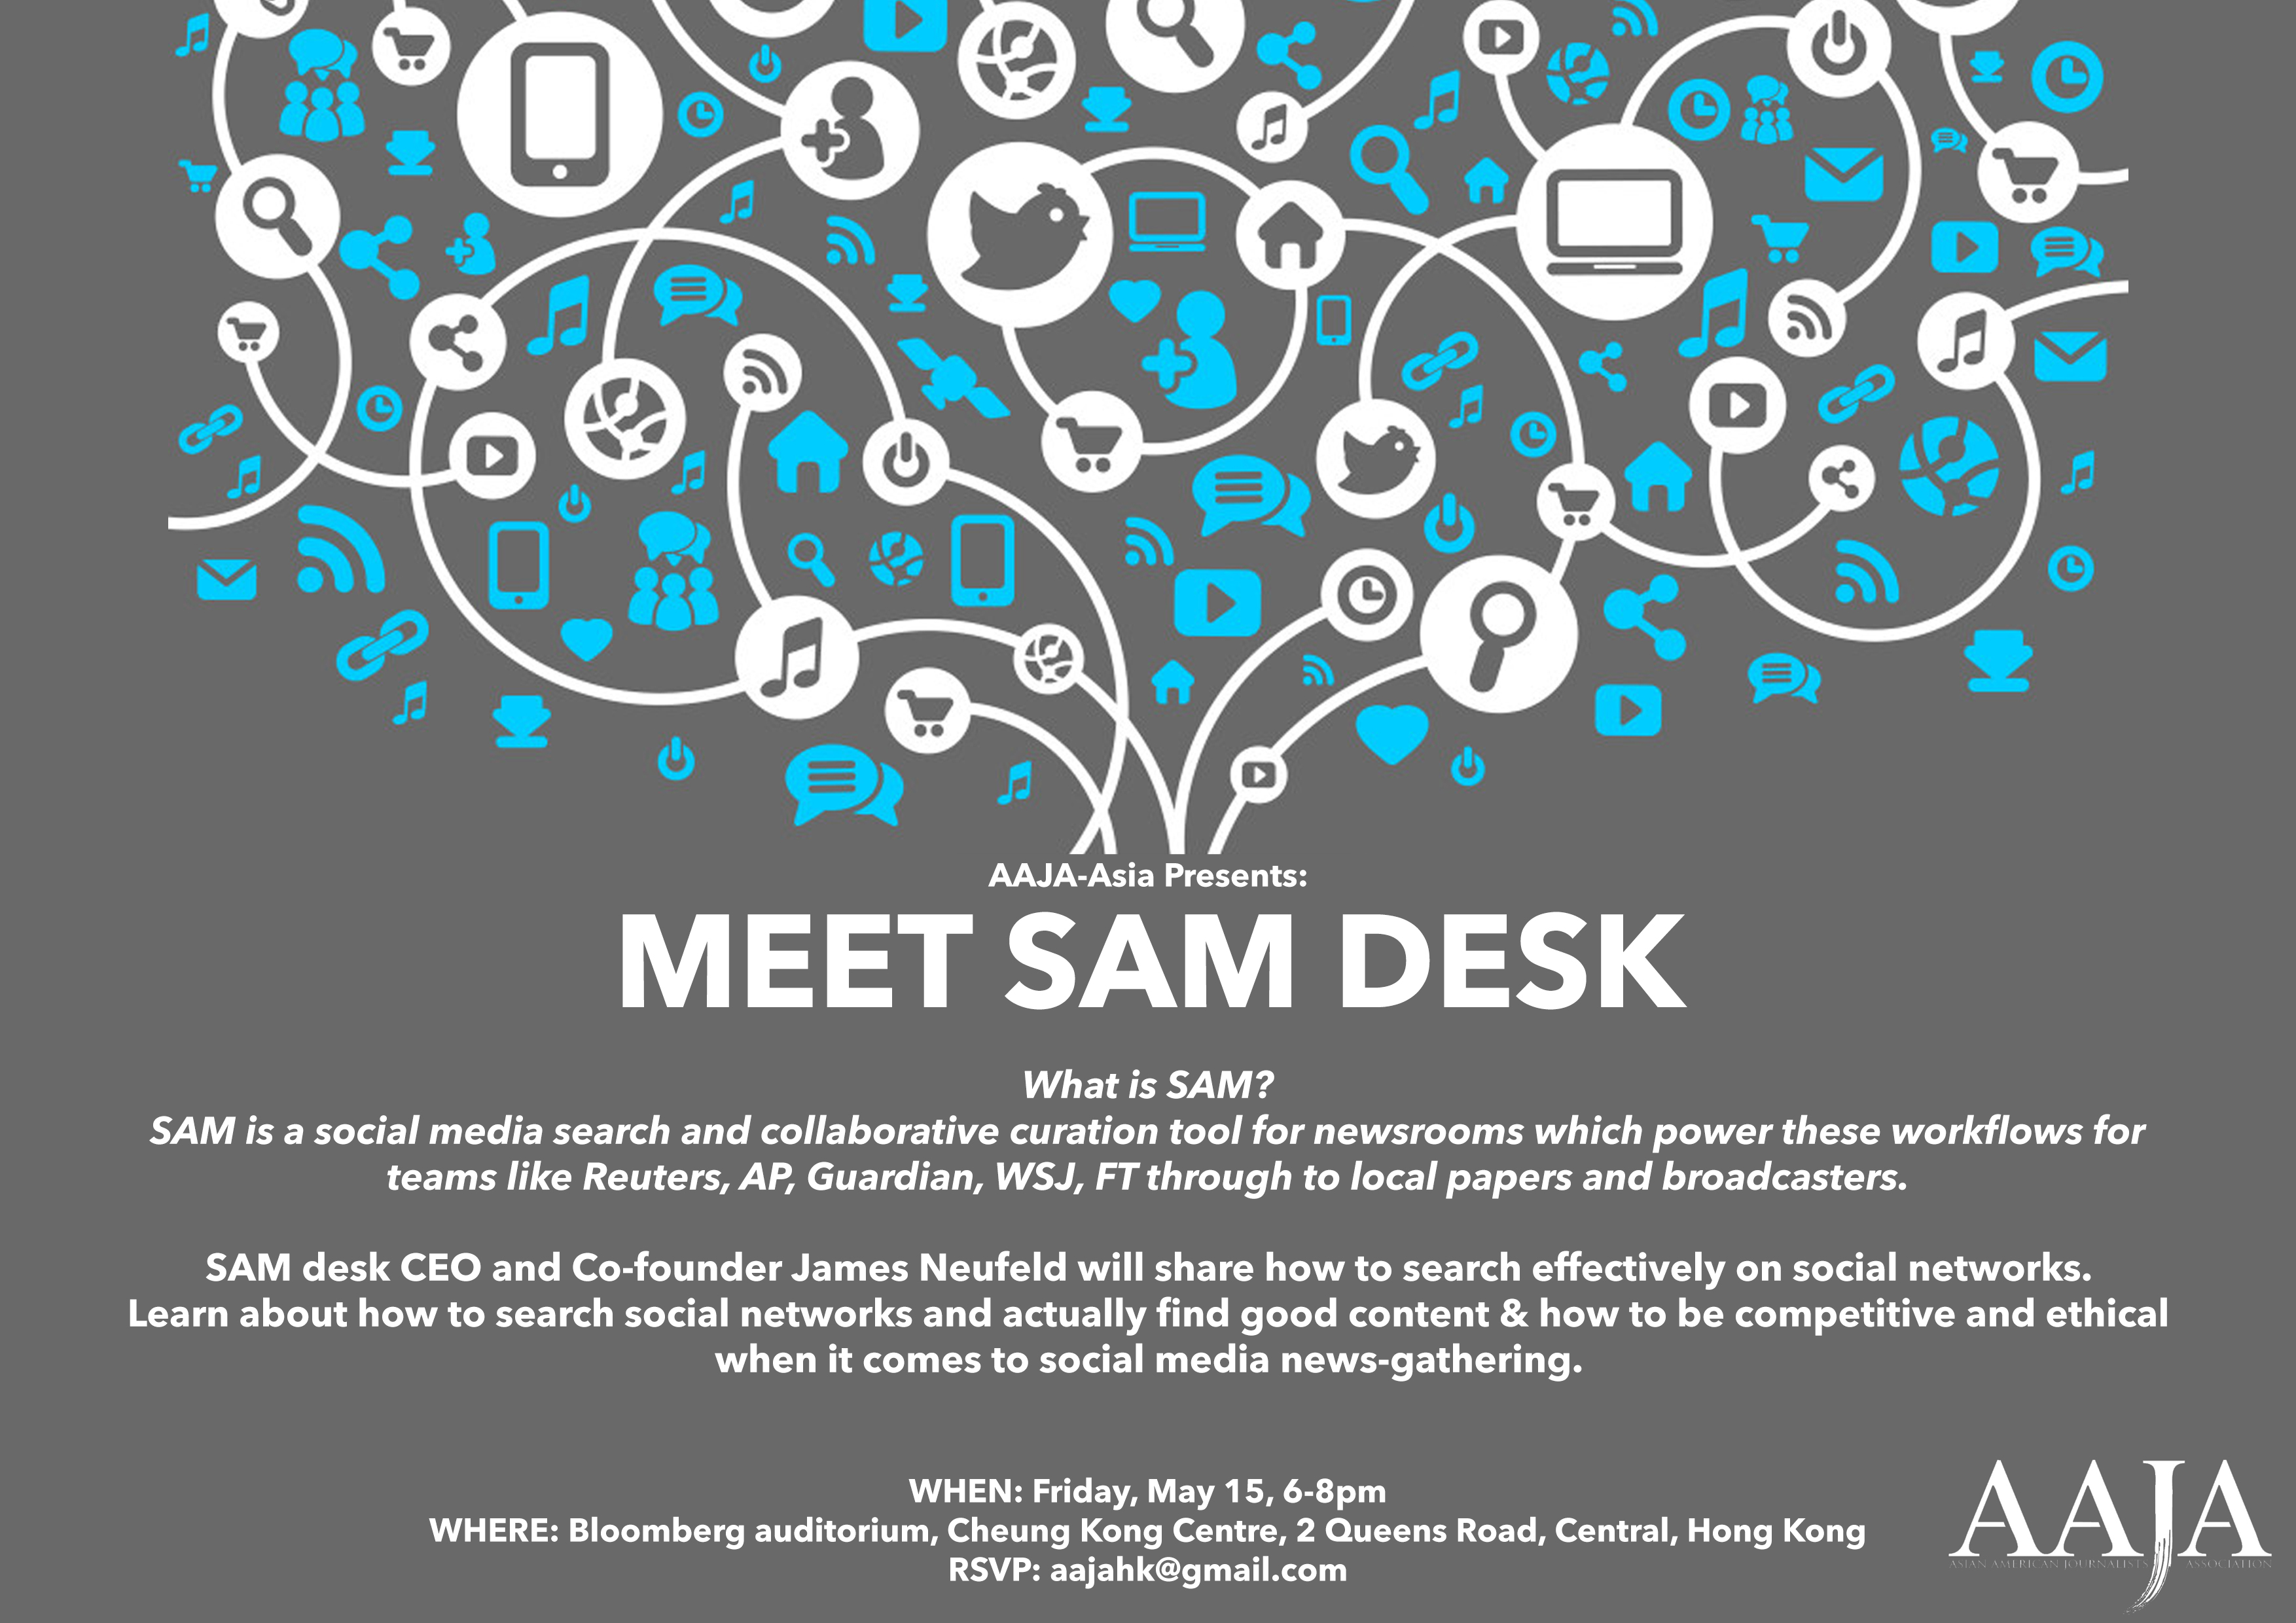 Hong Kong Event: Meet SAM Desk CEO and Co-founder